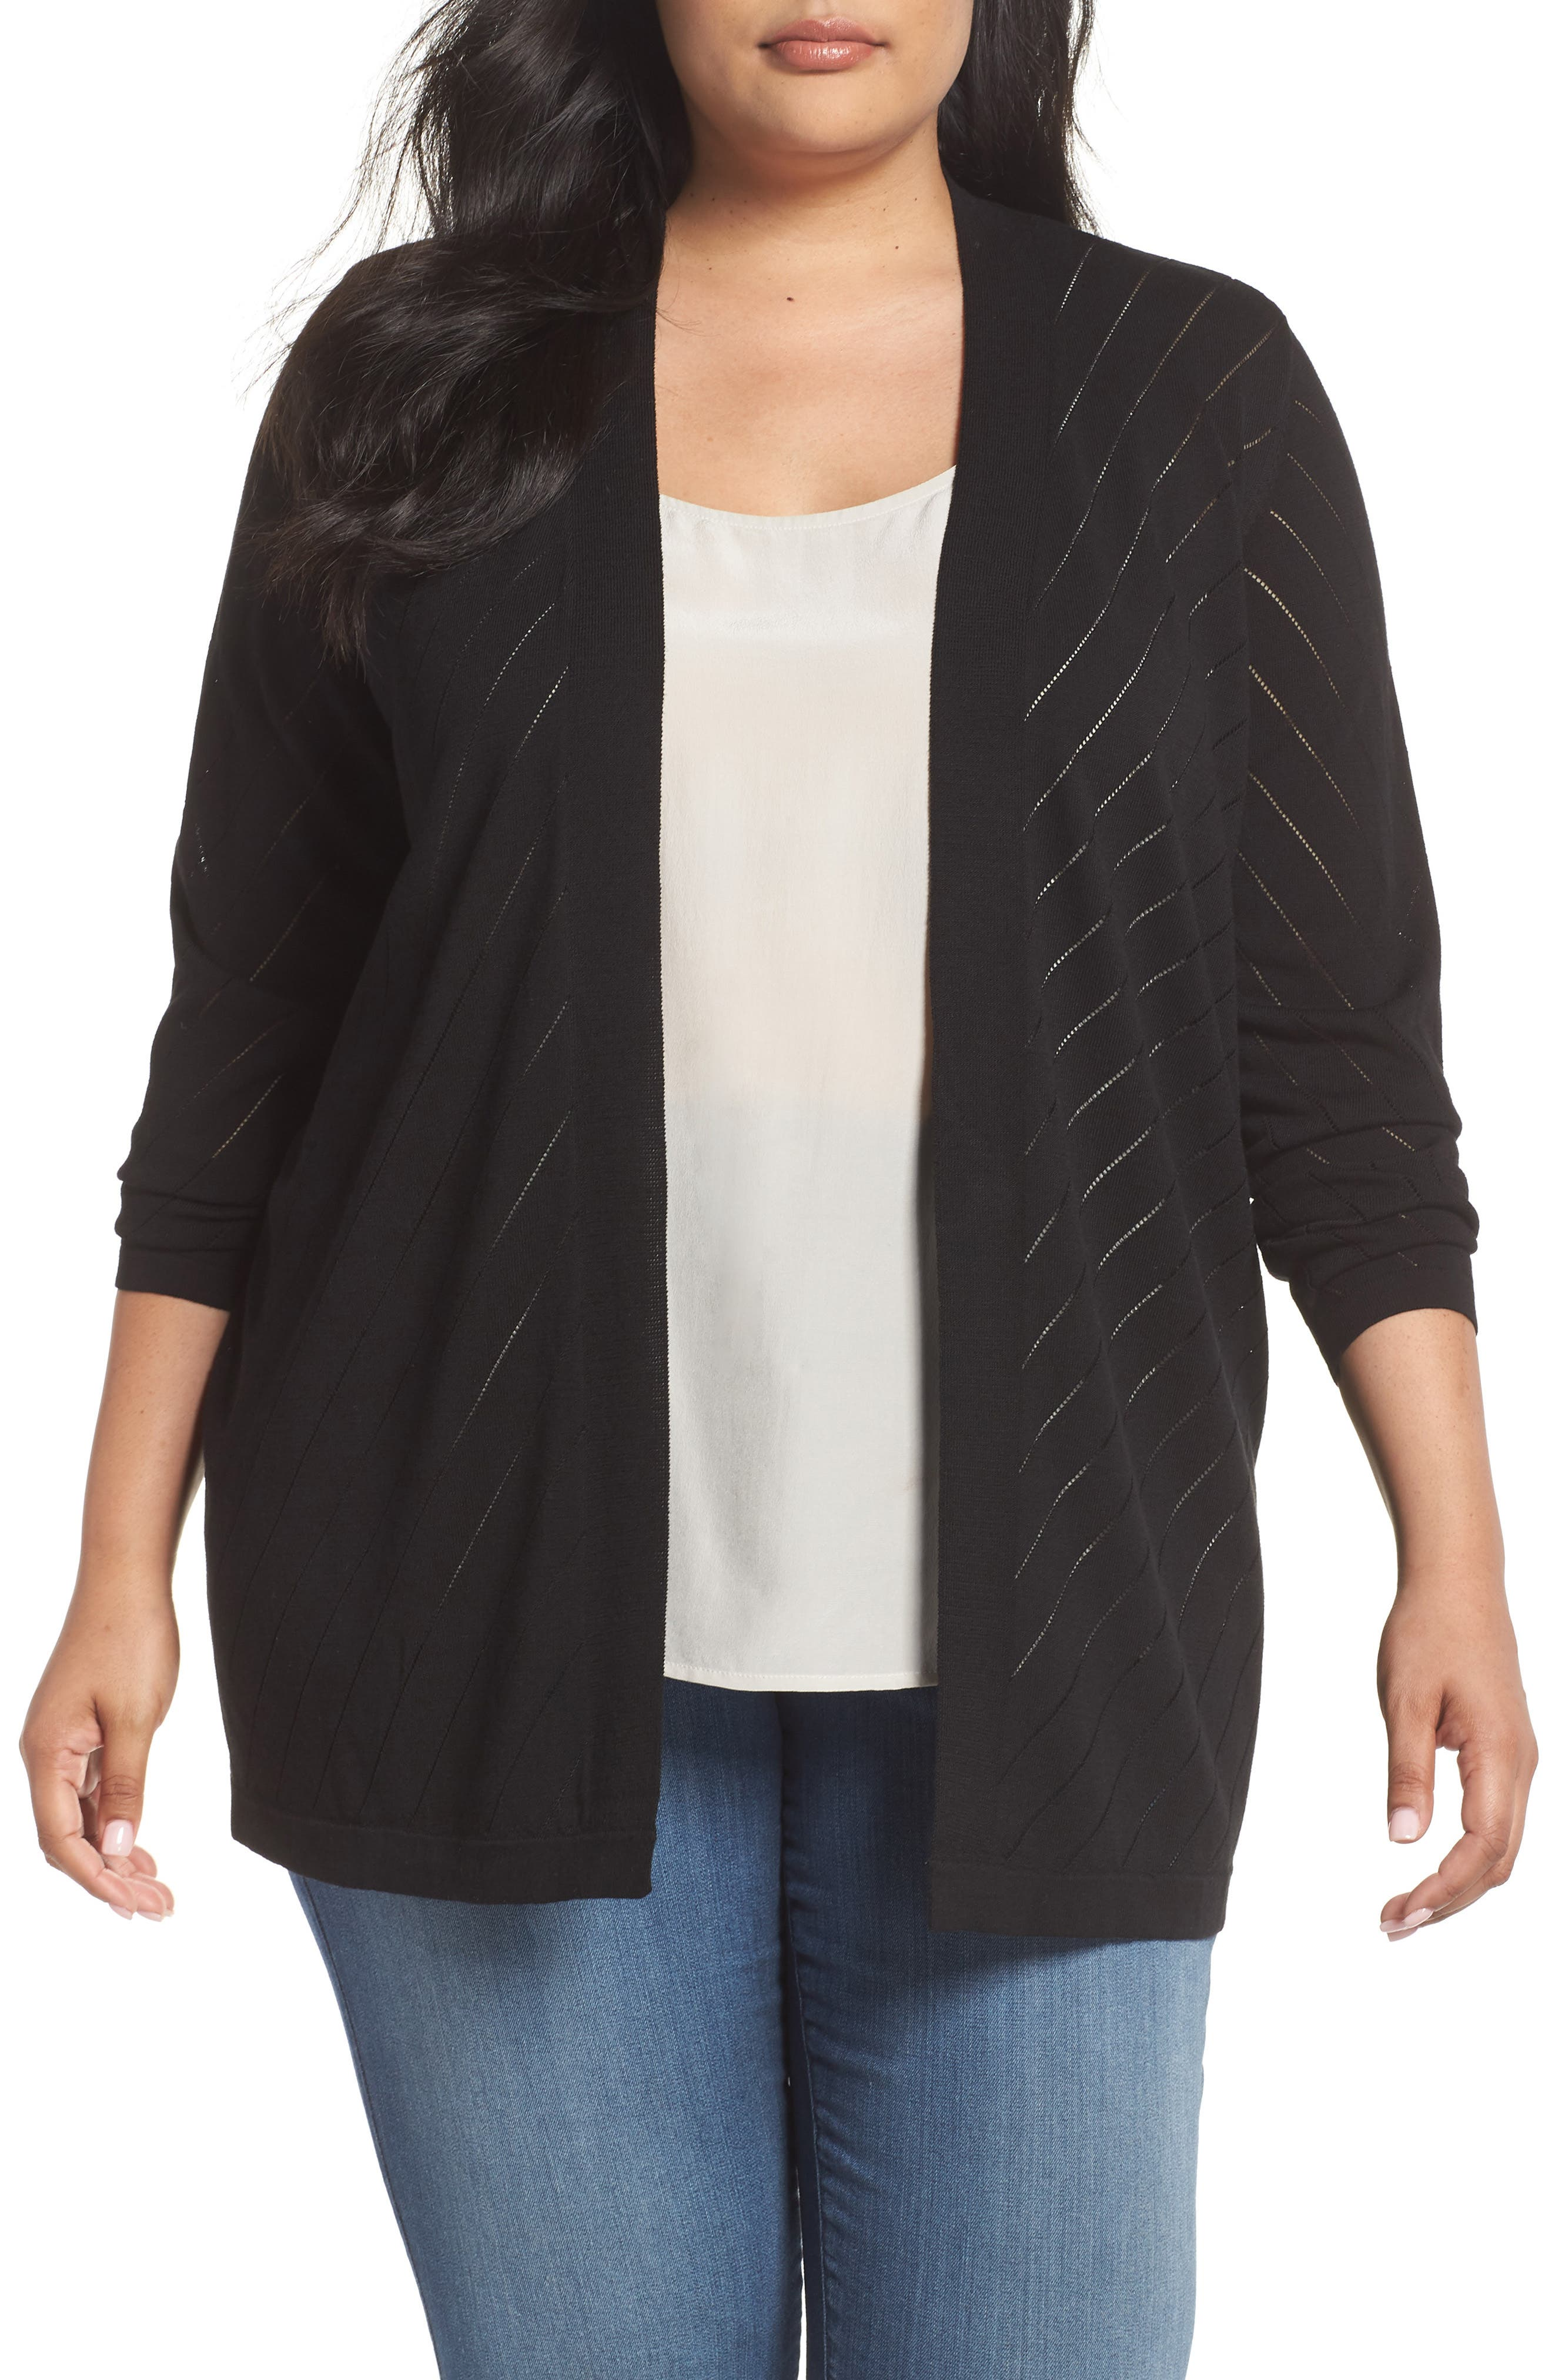 Pointelle Open Front Cardigan,                             Main thumbnail 1, color,                             010